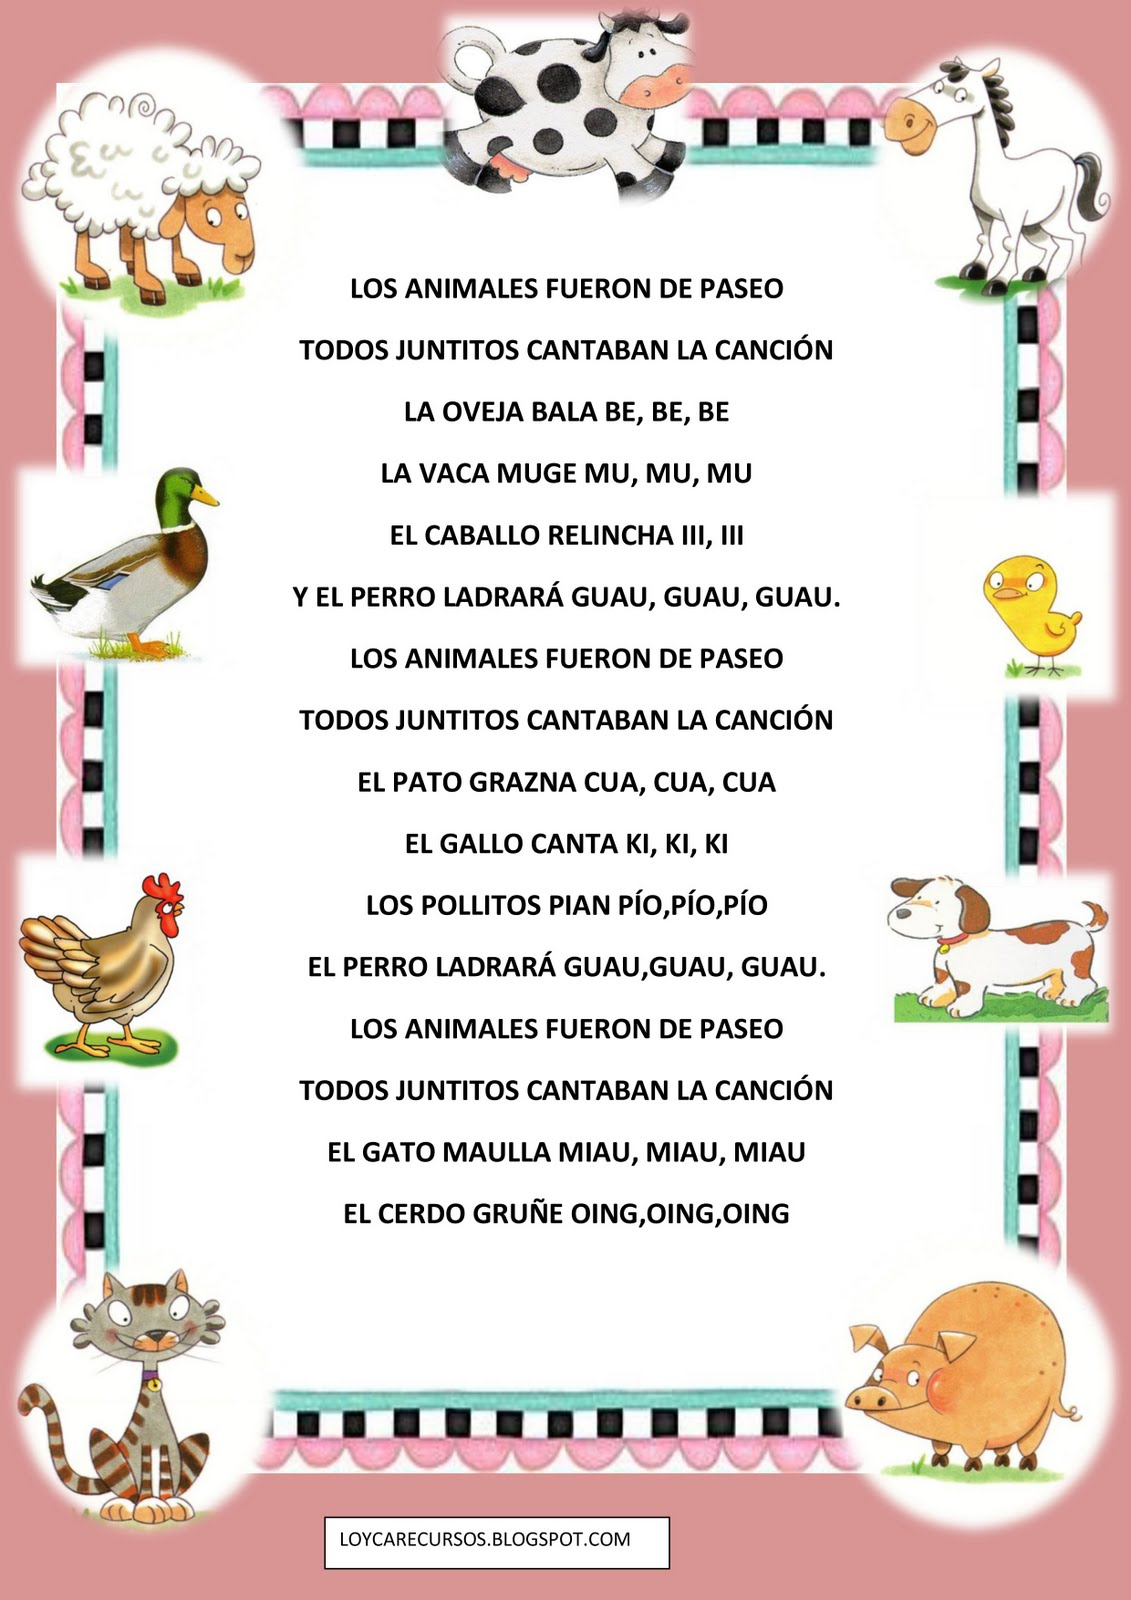 Cati jim nez vilaret recursos poes as for Cancion jardin de rosas en ingles